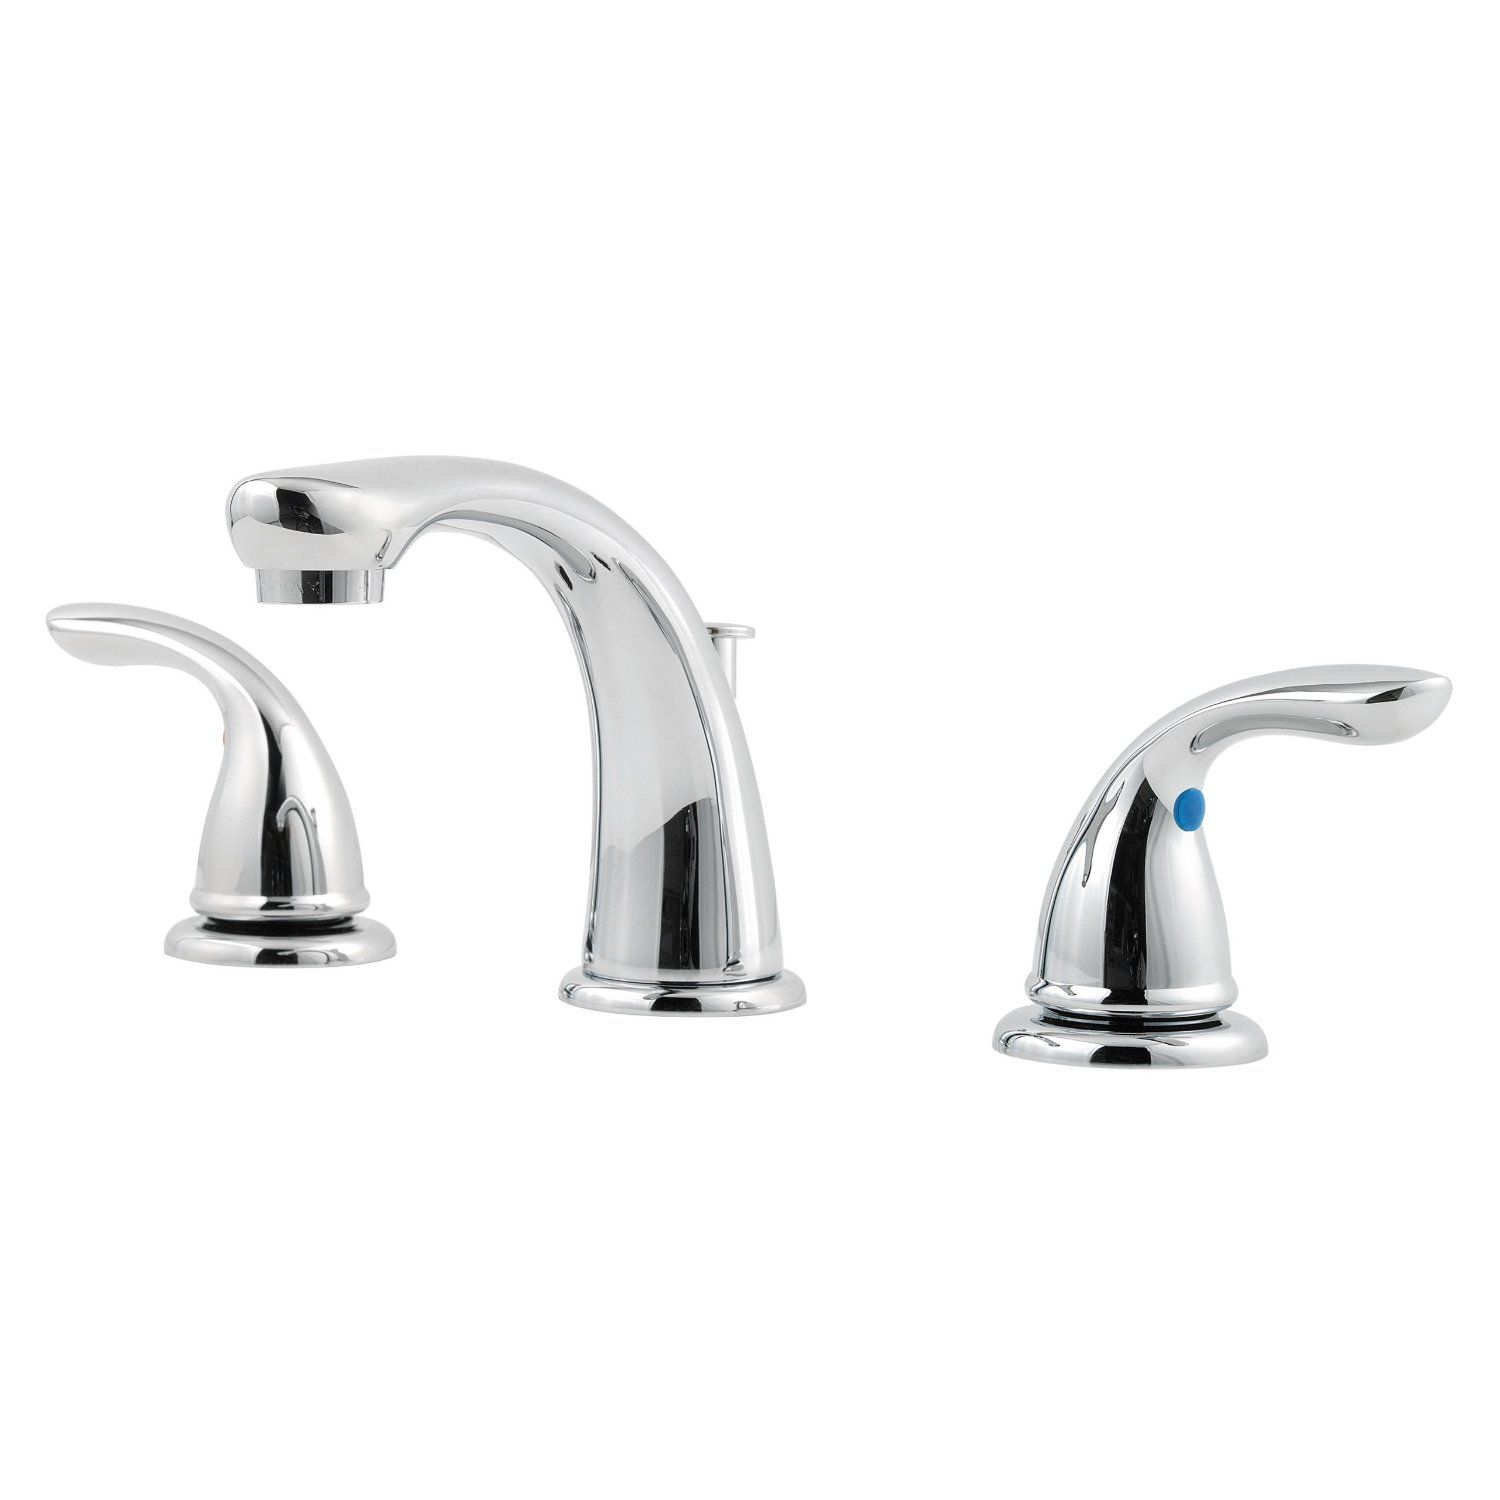 Pfister G1496100 Pfirst Series 8Inch Widespread Bathroom Faucet Brilliant Pfister Bathroom Faucet 2018